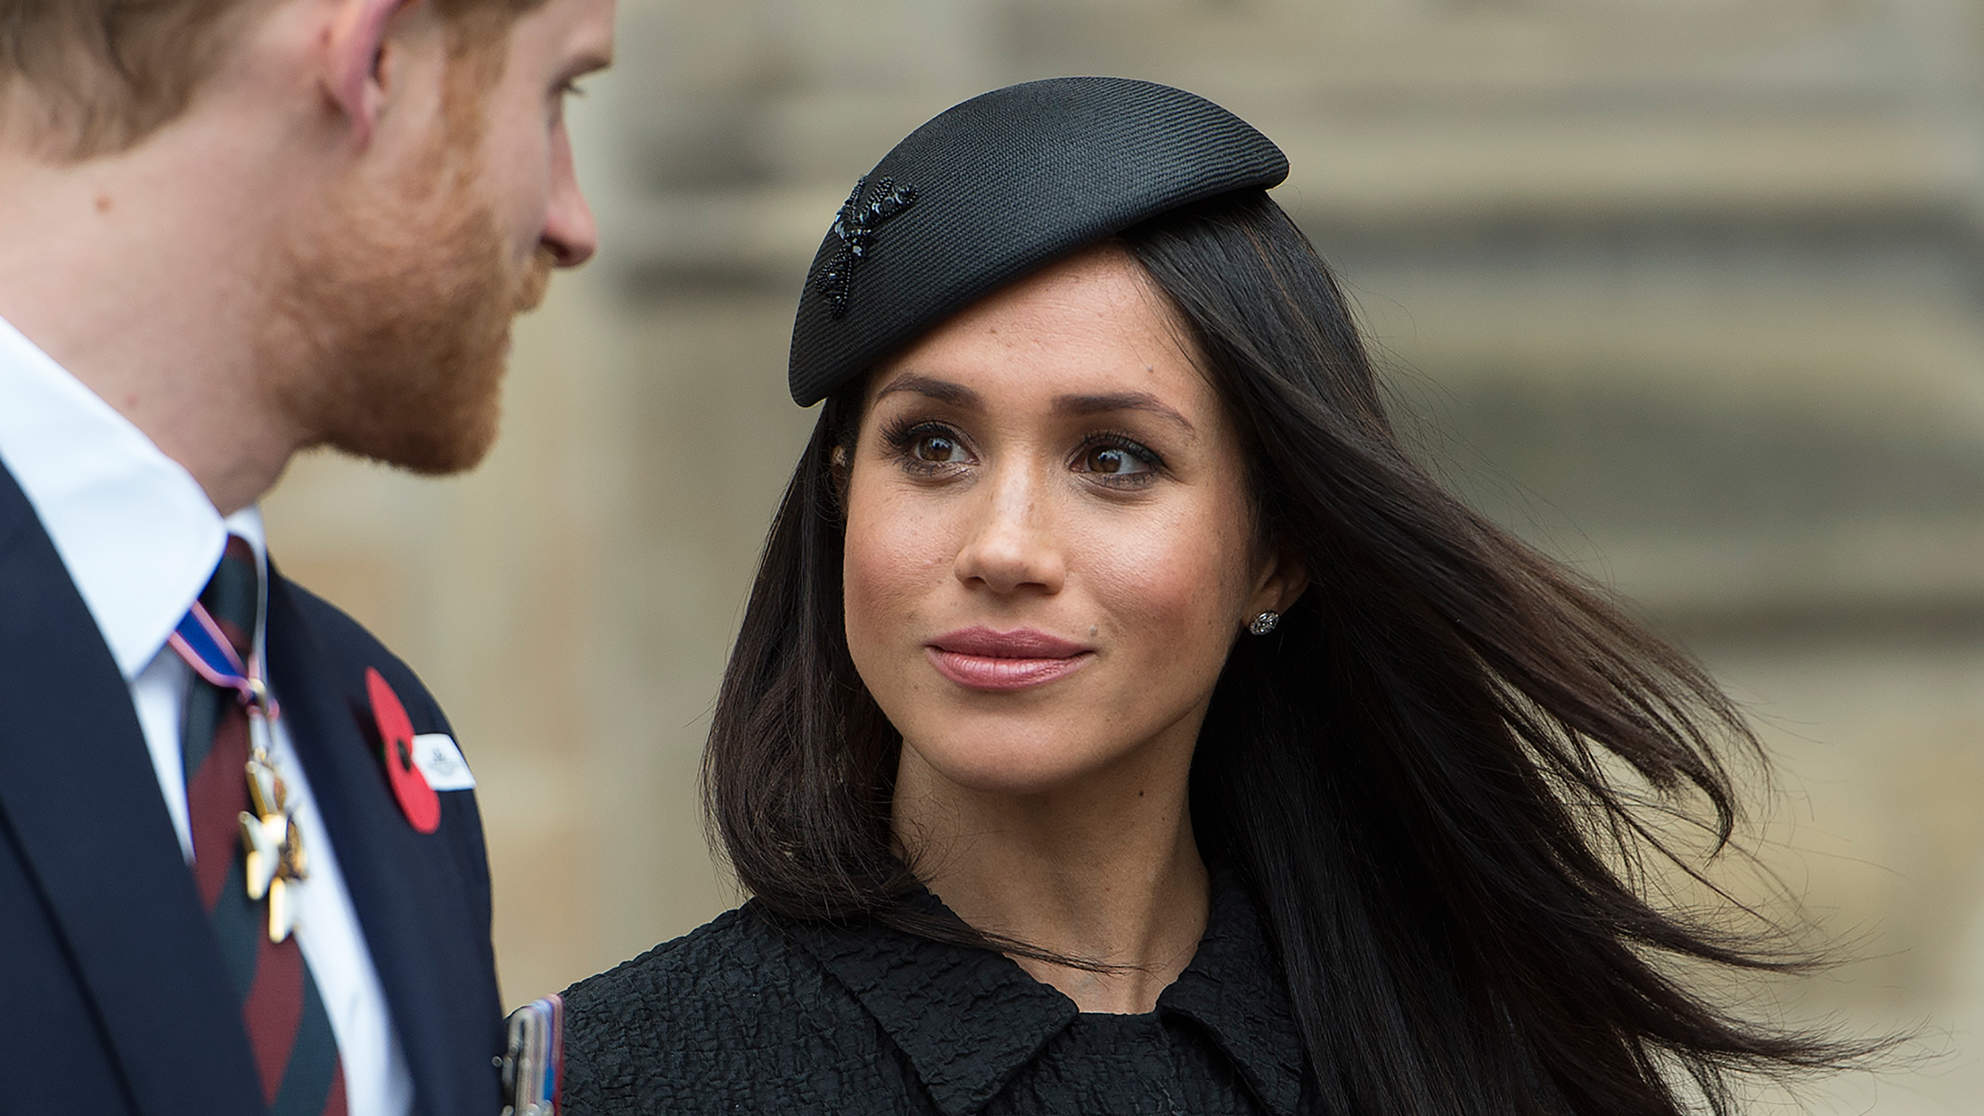 Meghan Markle Asks Prince Charles to Walk Her Down Aisle in Absence of Her Dad: 'It Was Her Wish'